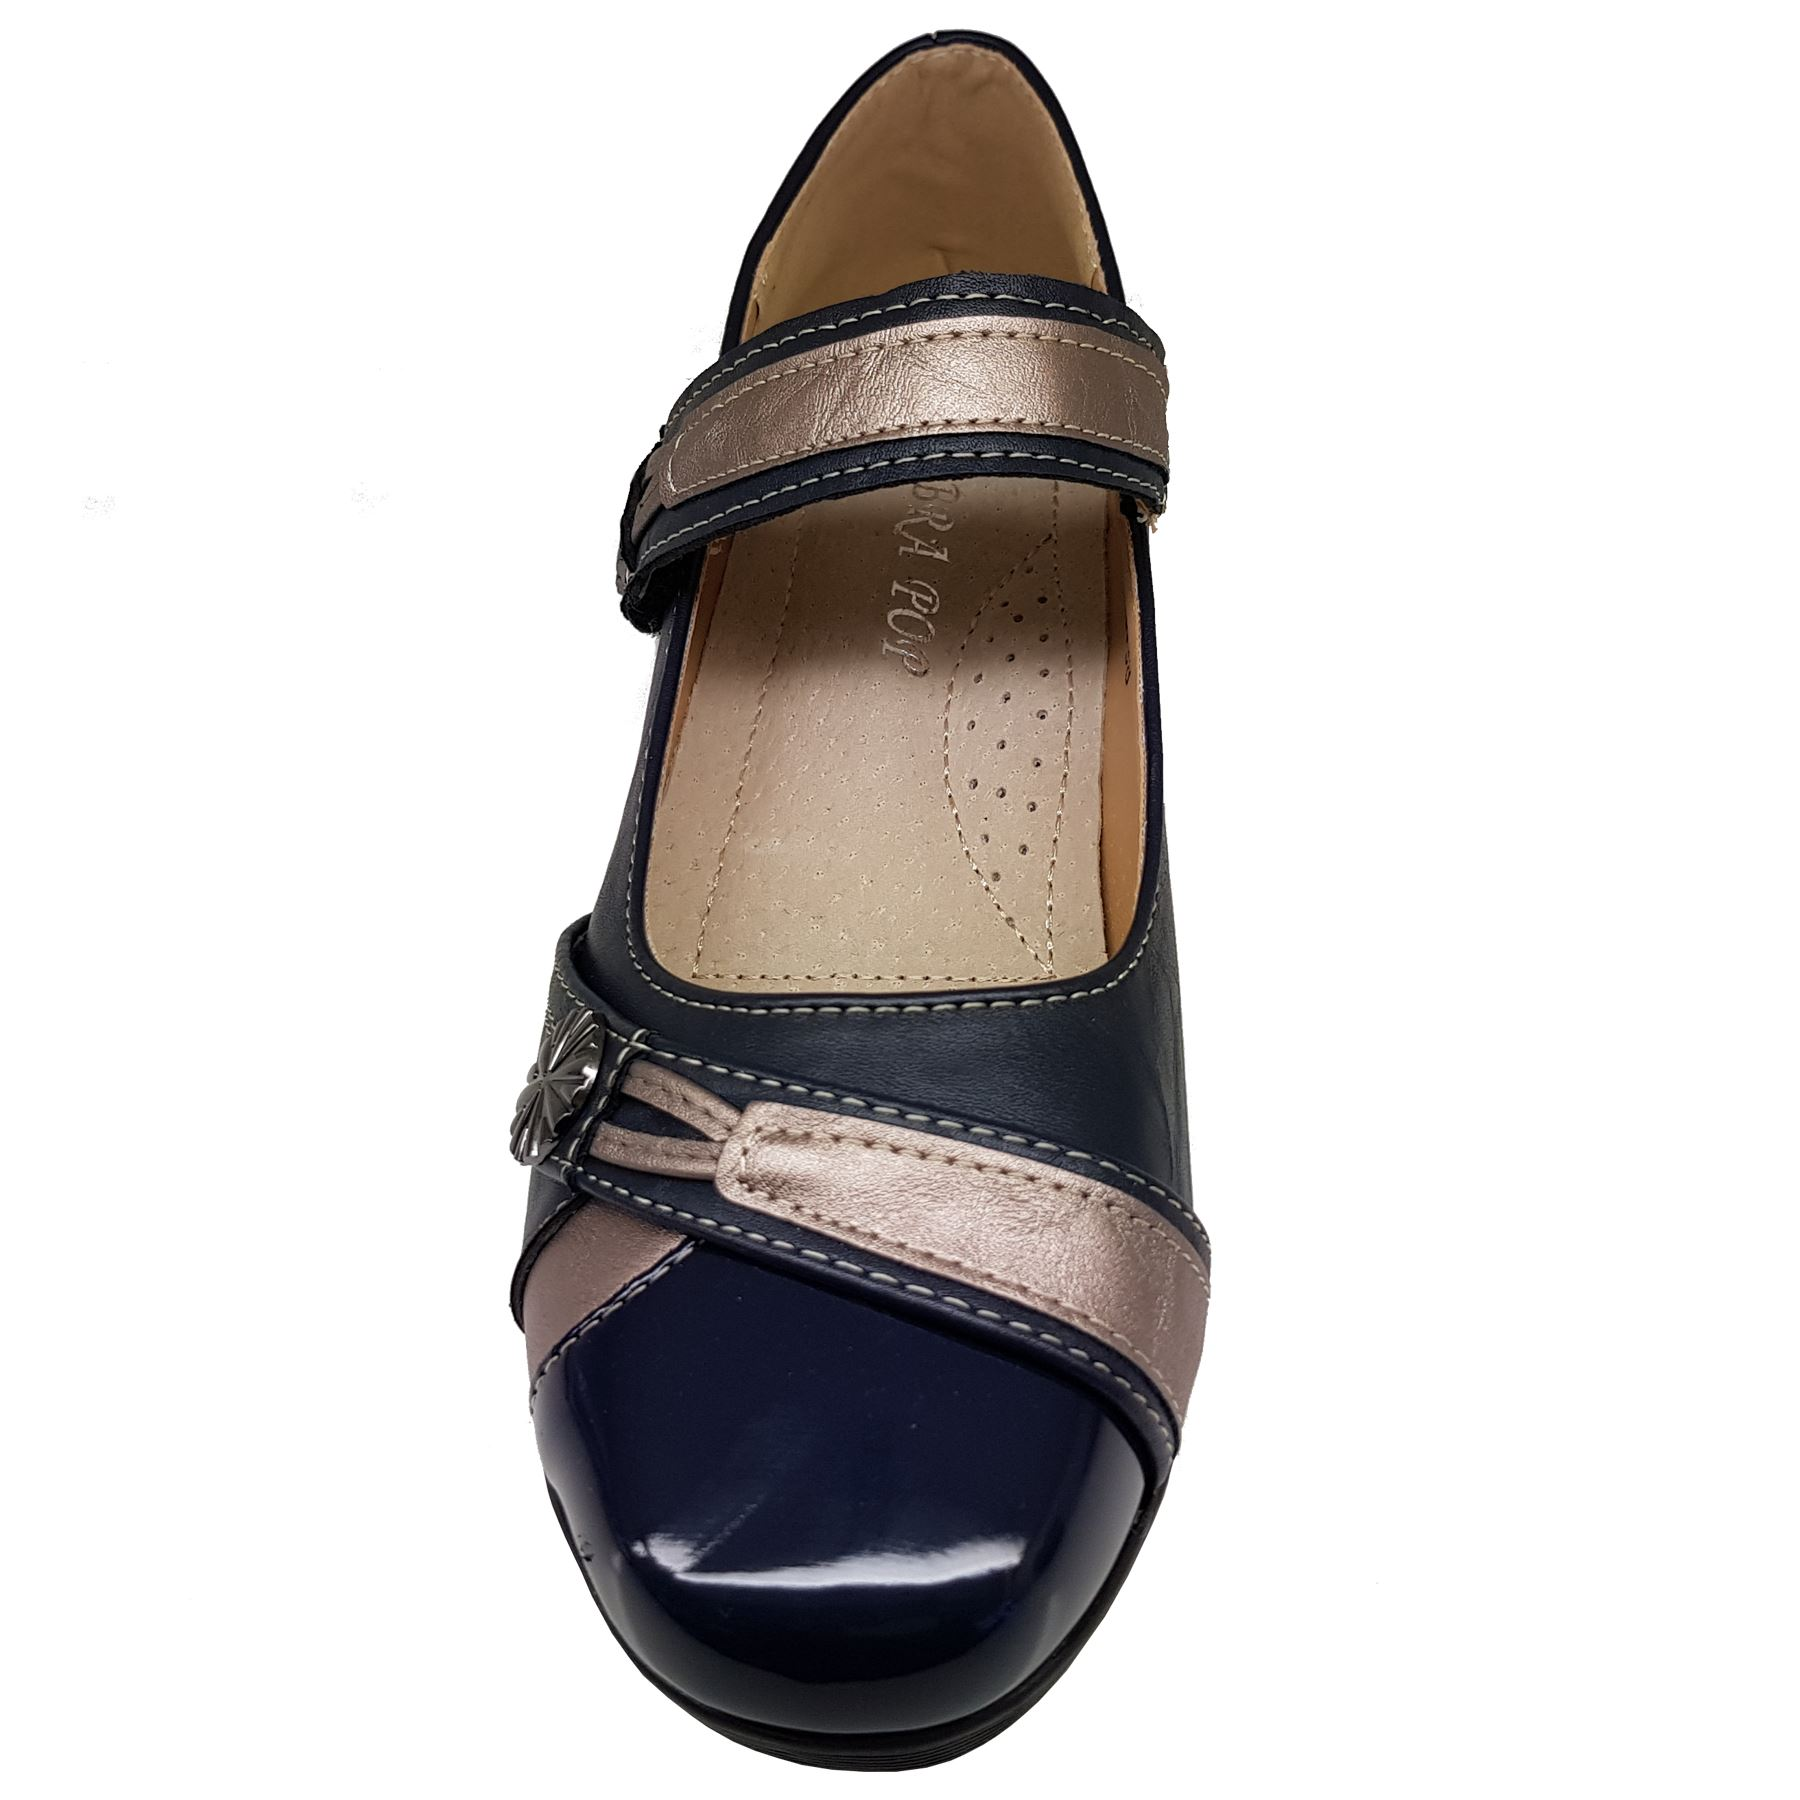 Womens Comfortable Sole Slip On Strap Low Wedge Faux Leather Shoes